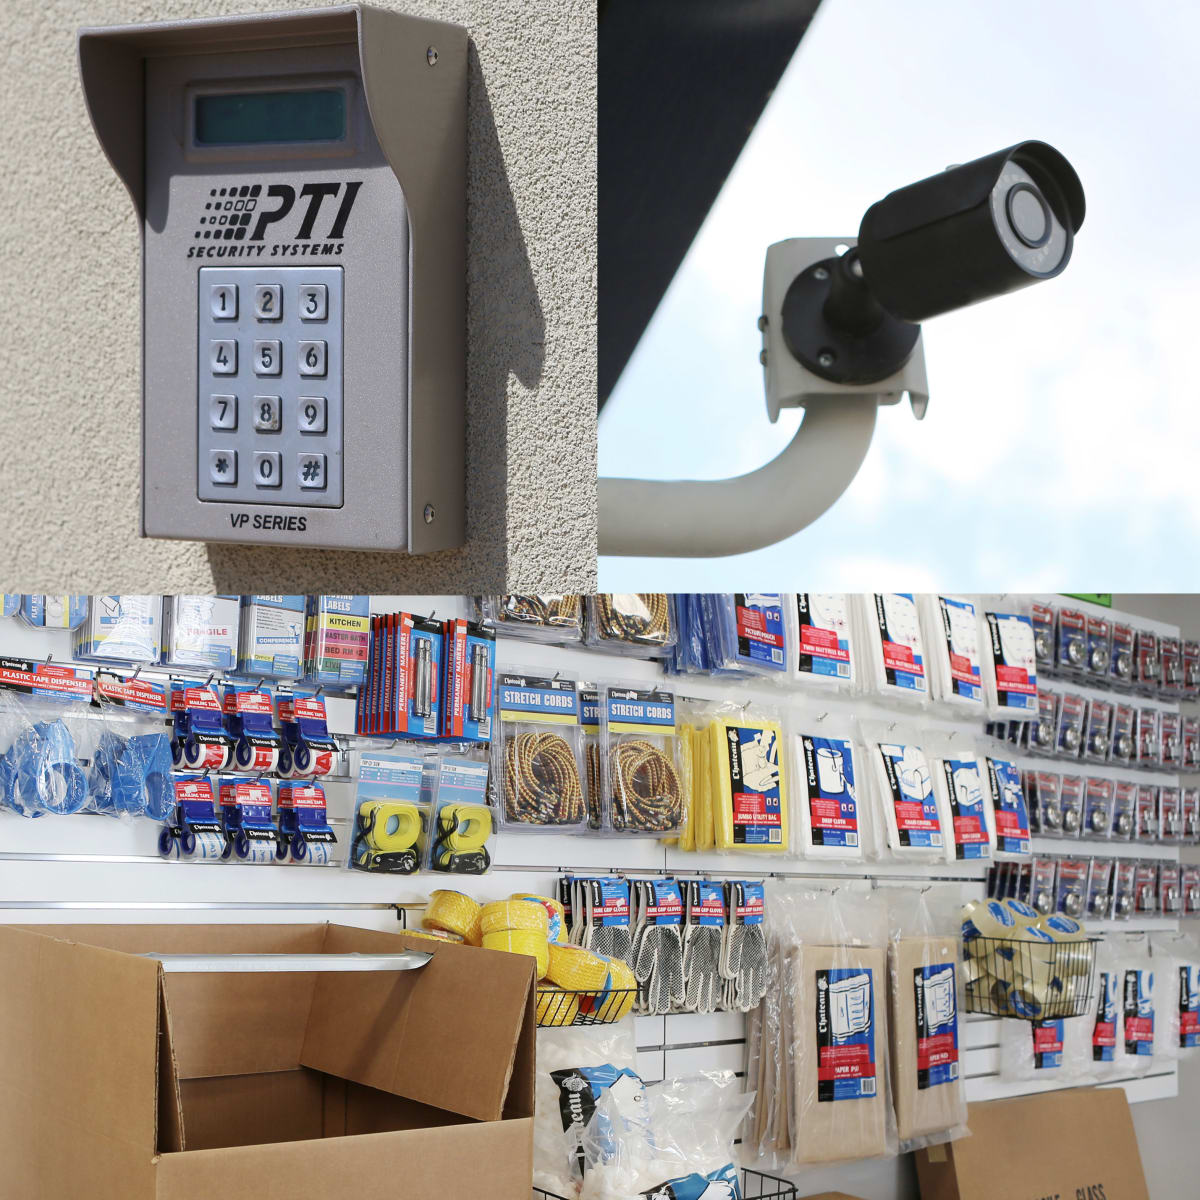 We provide 24 hour security monitoring and sell various moving and packing supplies at StoreSmart Self-Storage in Conway, Arkansas